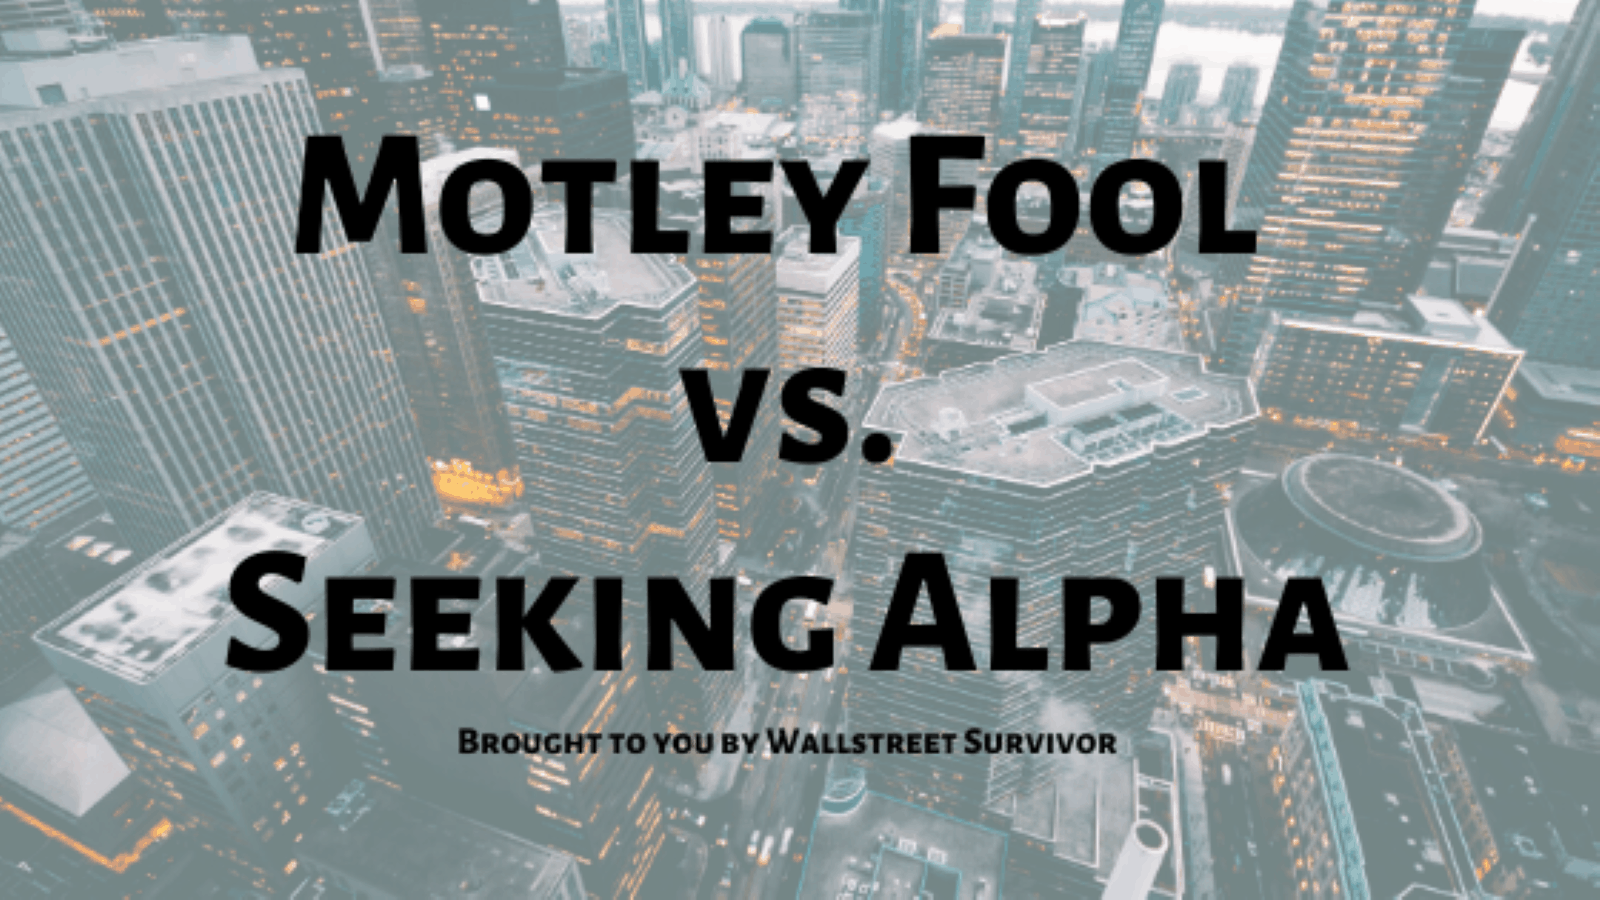 motley fool-seeking alpha